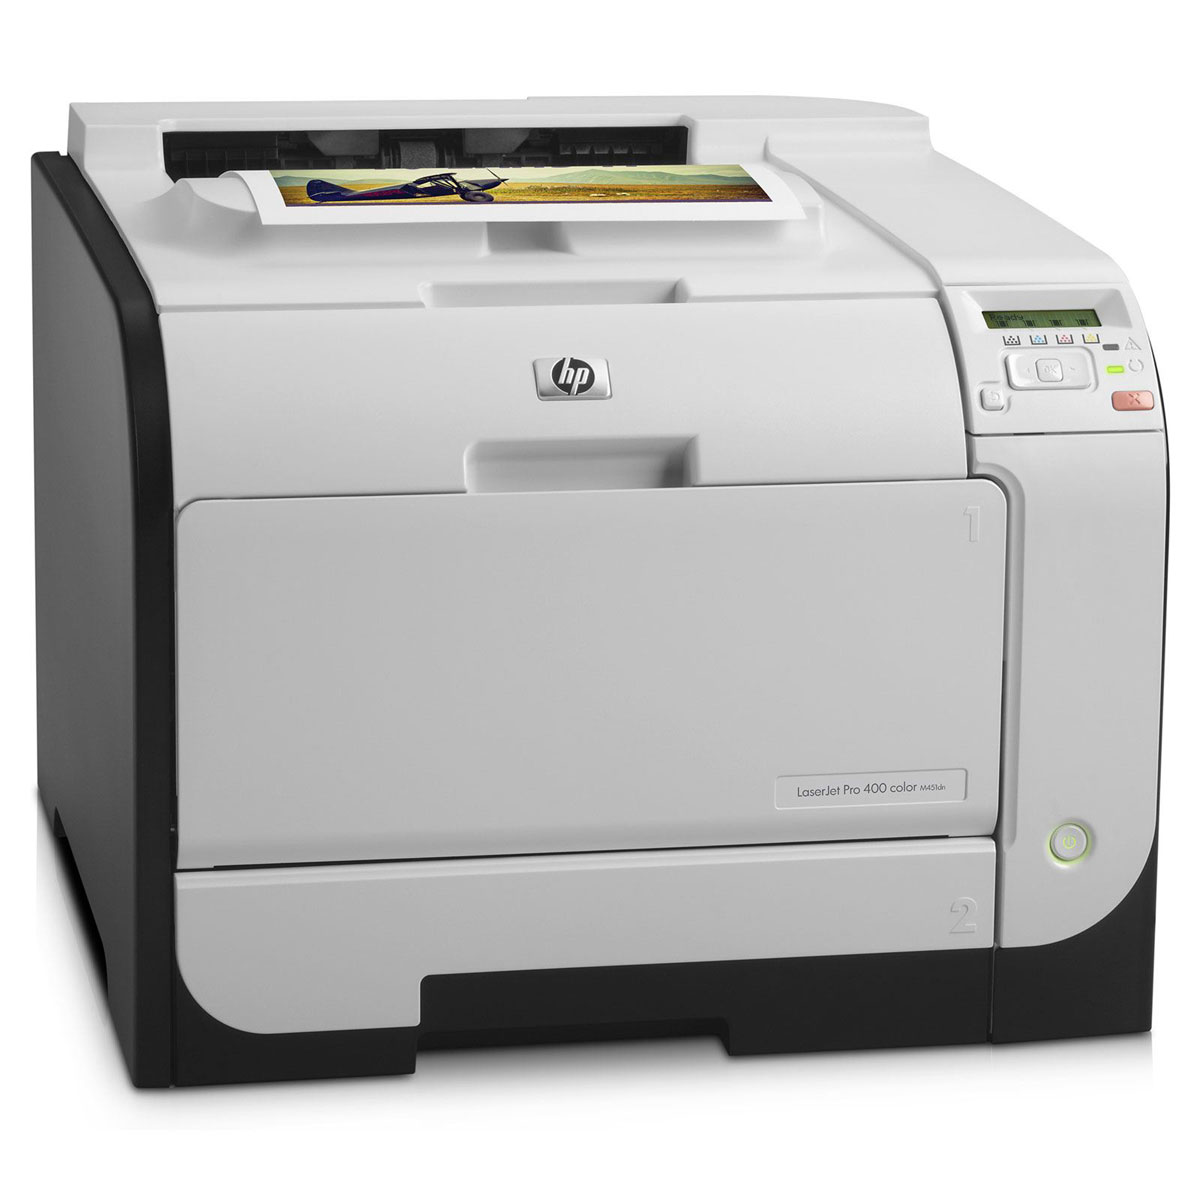 hp laserjet pro m451nw ce956a imprimante laser hp sur ldlc. Black Bedroom Furniture Sets. Home Design Ideas